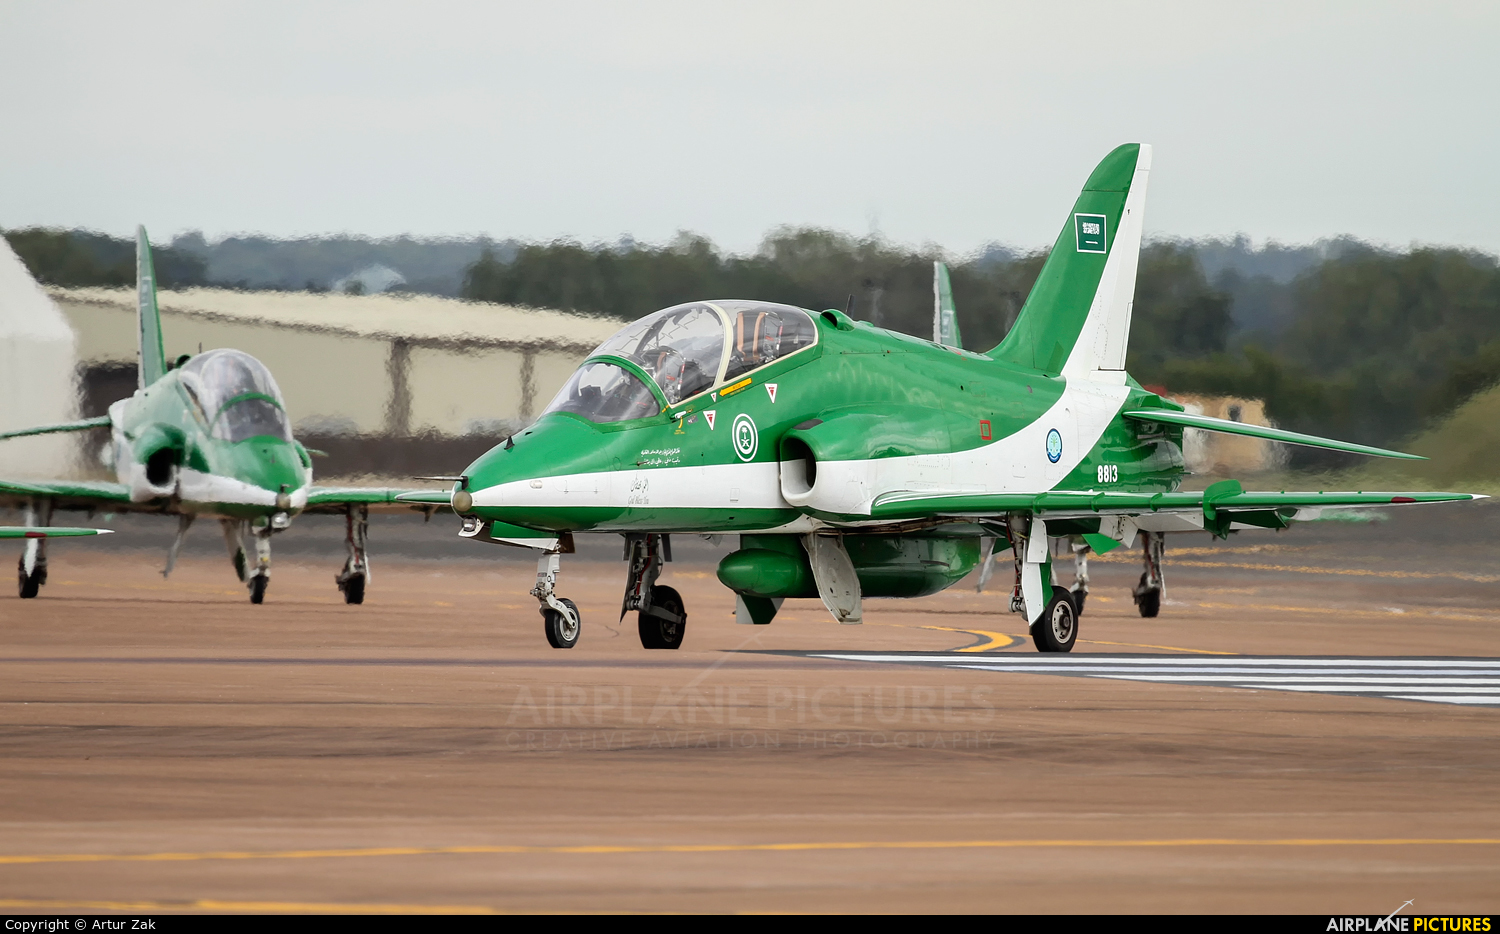 Saudi Arabia - Air Force: Saudi Hawks 8813 aircraft at Fairford